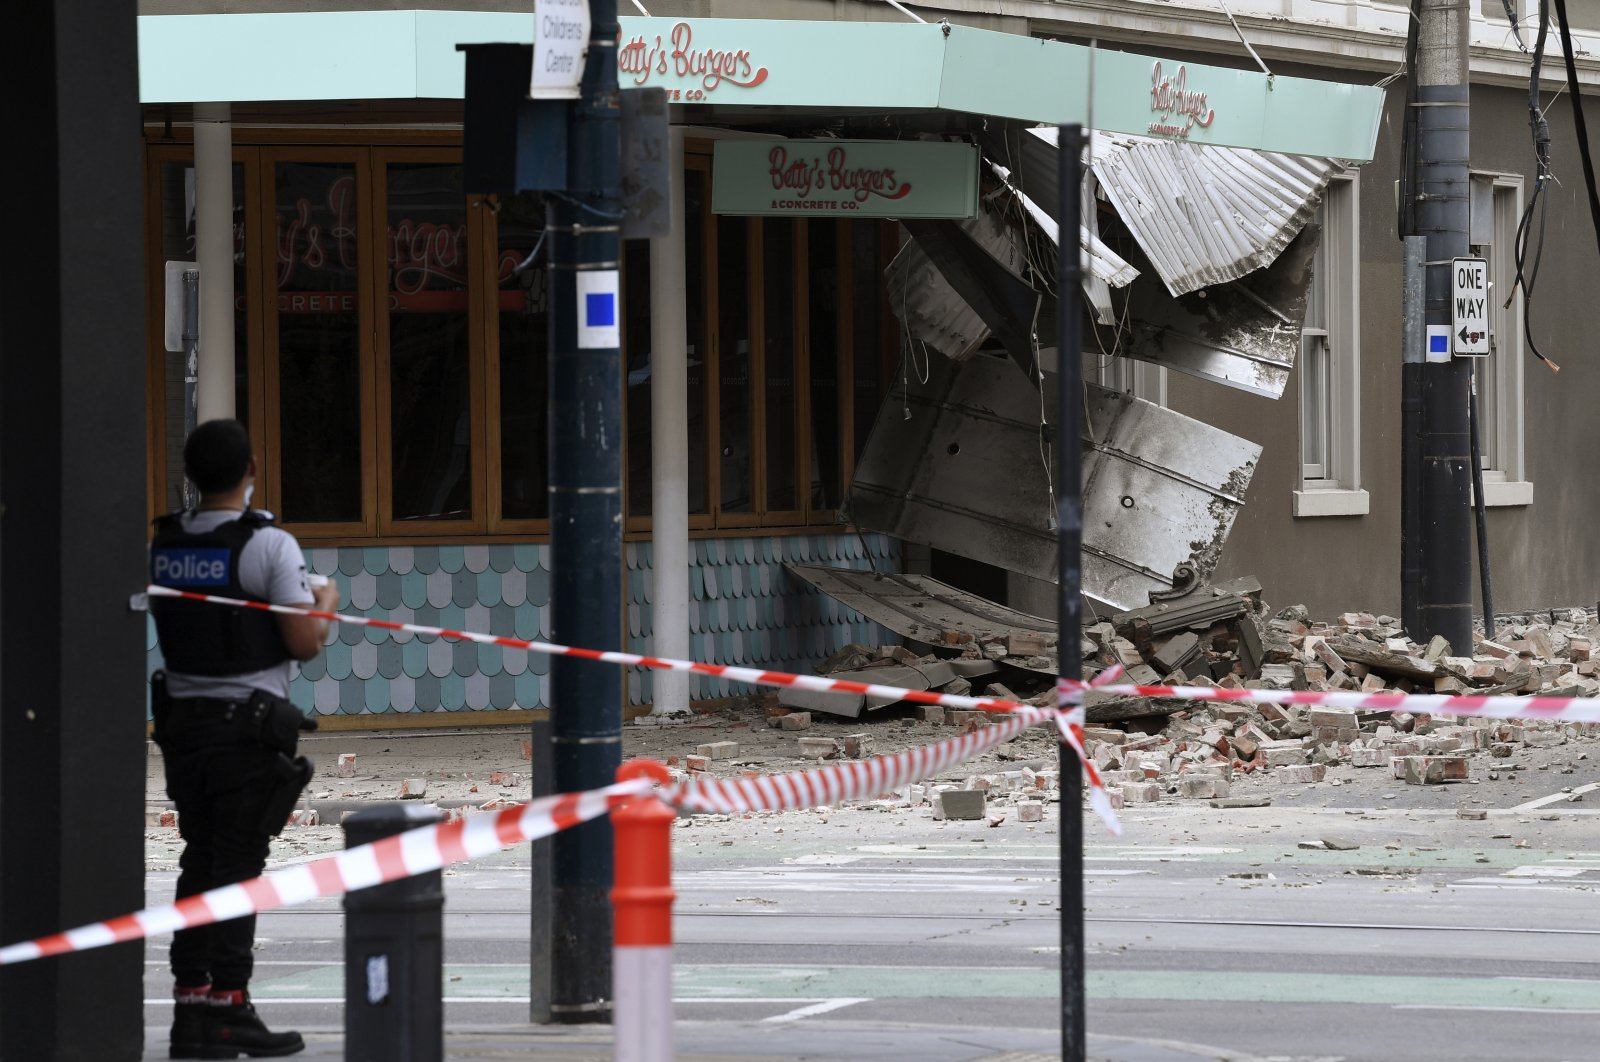 A police officer closes an intersection where debris is scattered in the road after an earthquake damaged a building in Melbourne, Australia, Sept. 22, 2021. (AAP Image via AP)